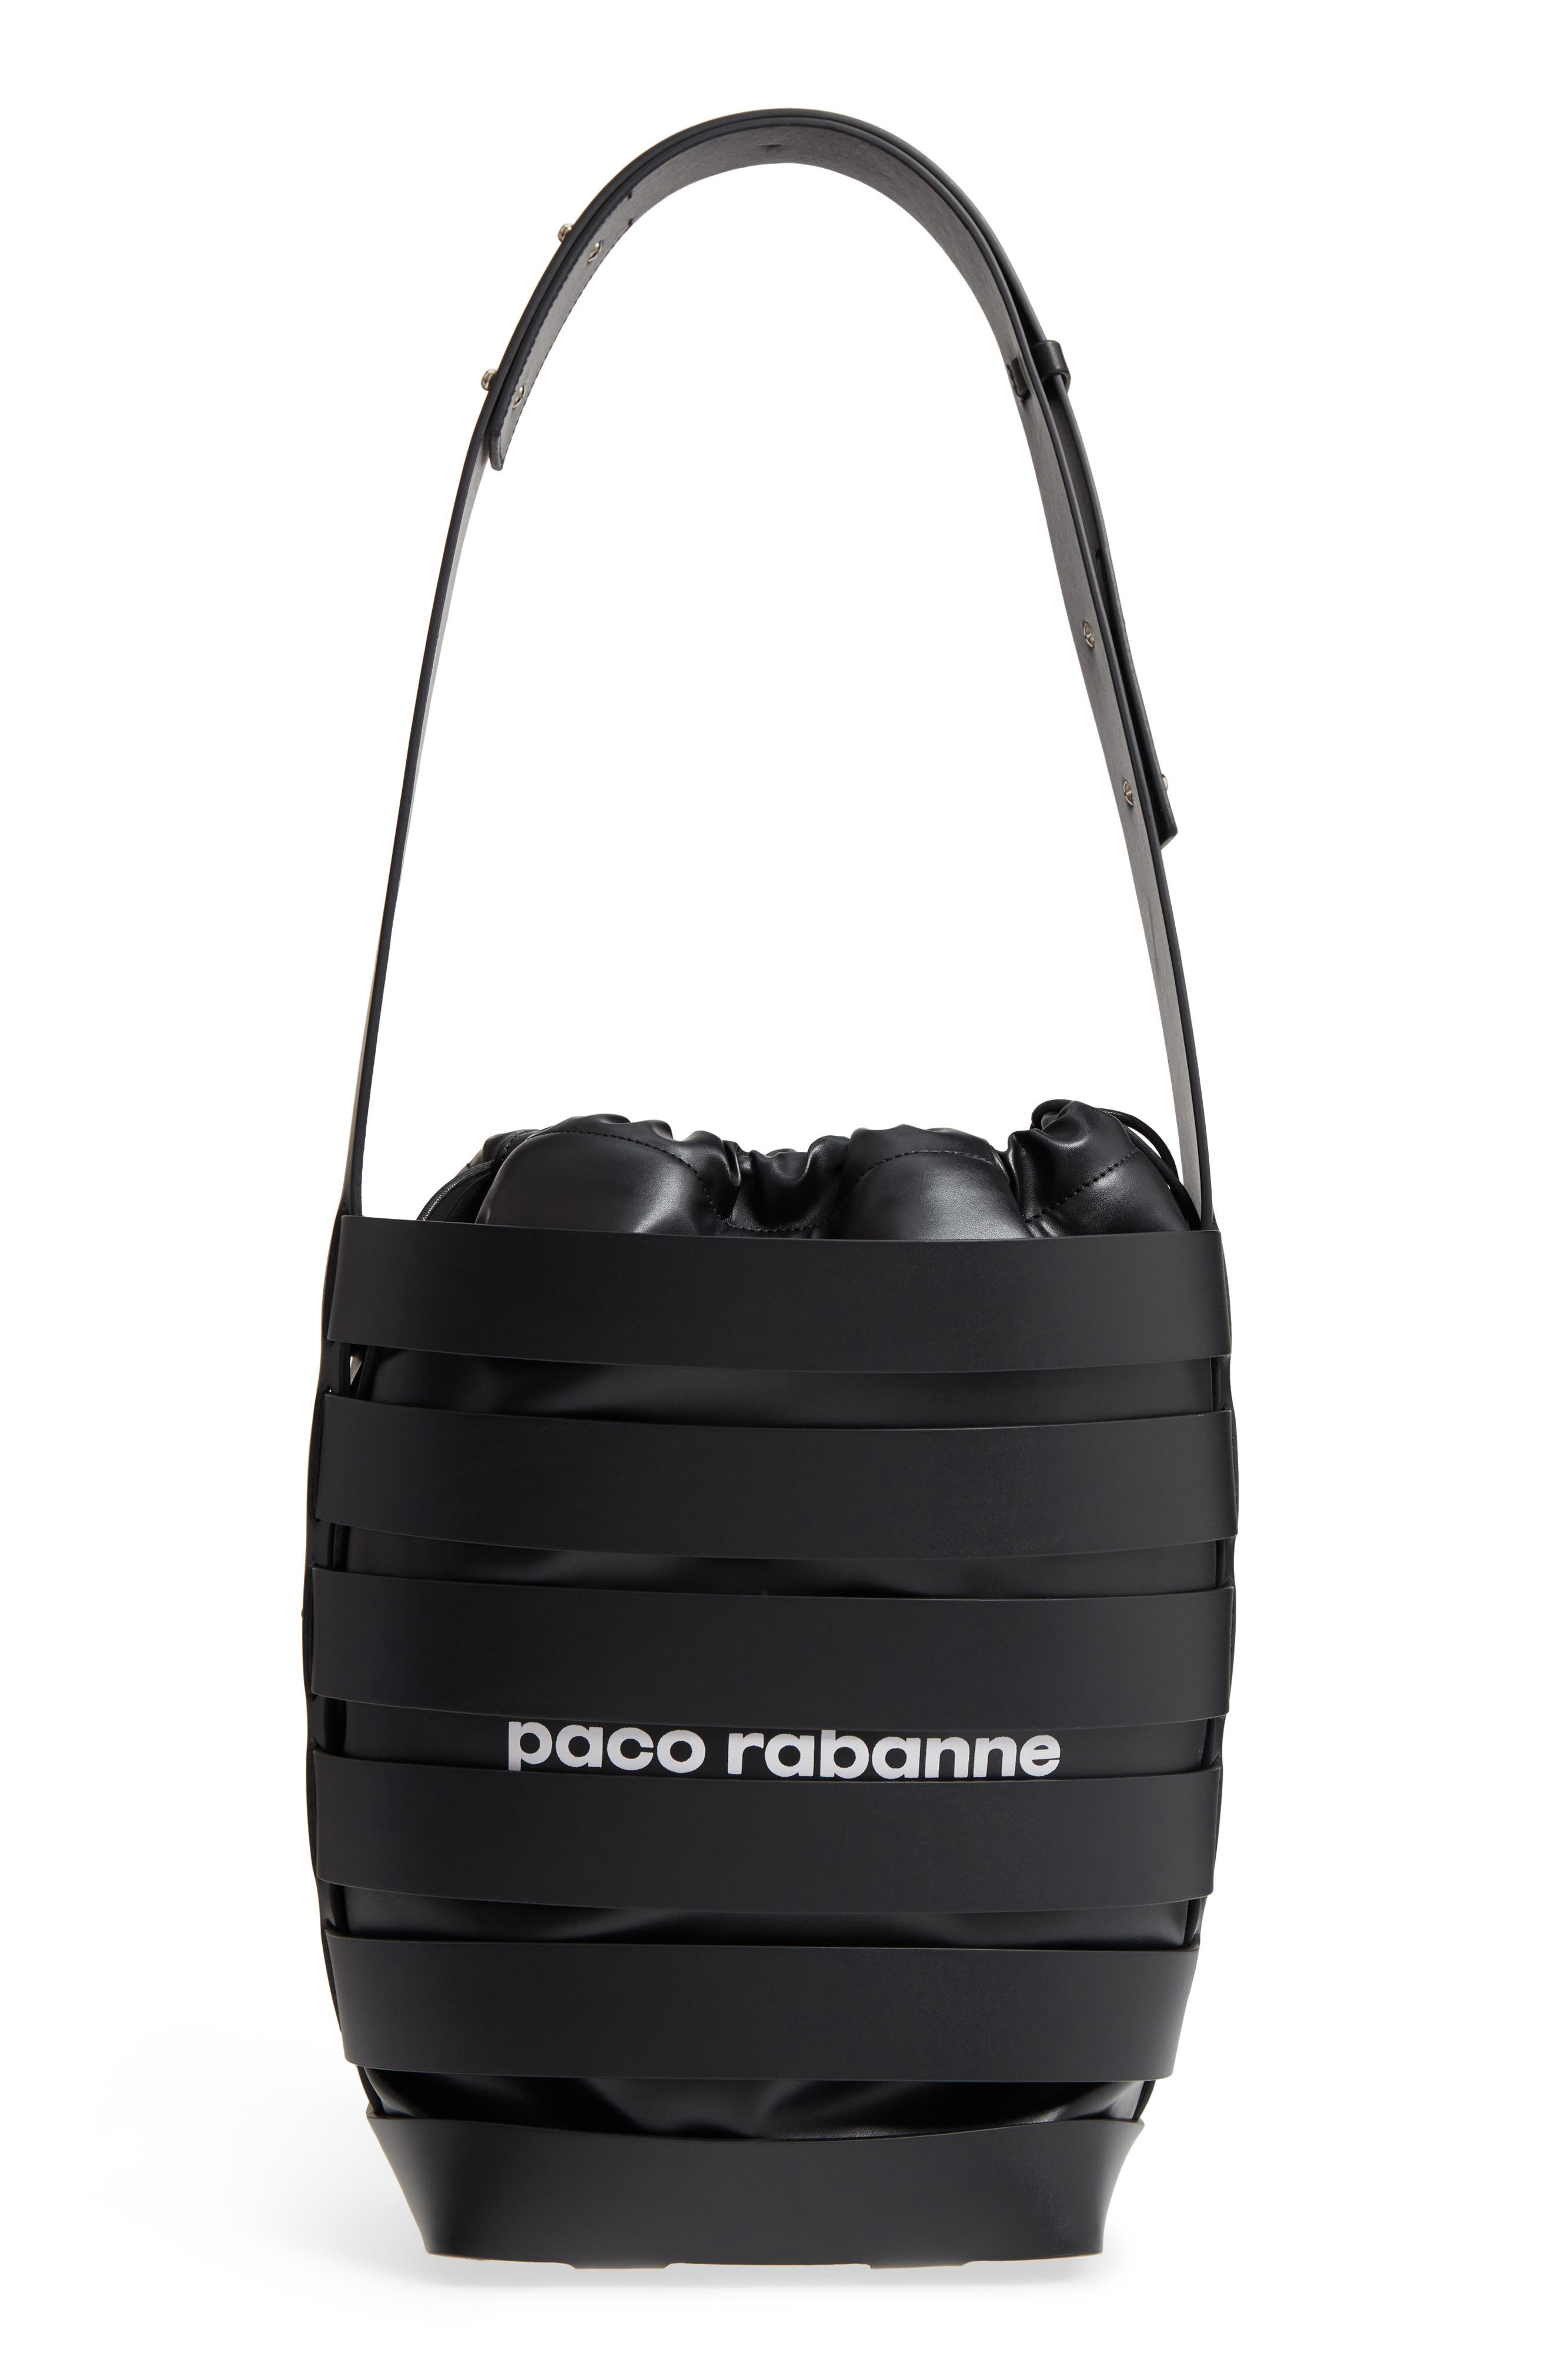 paco rabanne Medium Cage Leather Bucket Bag